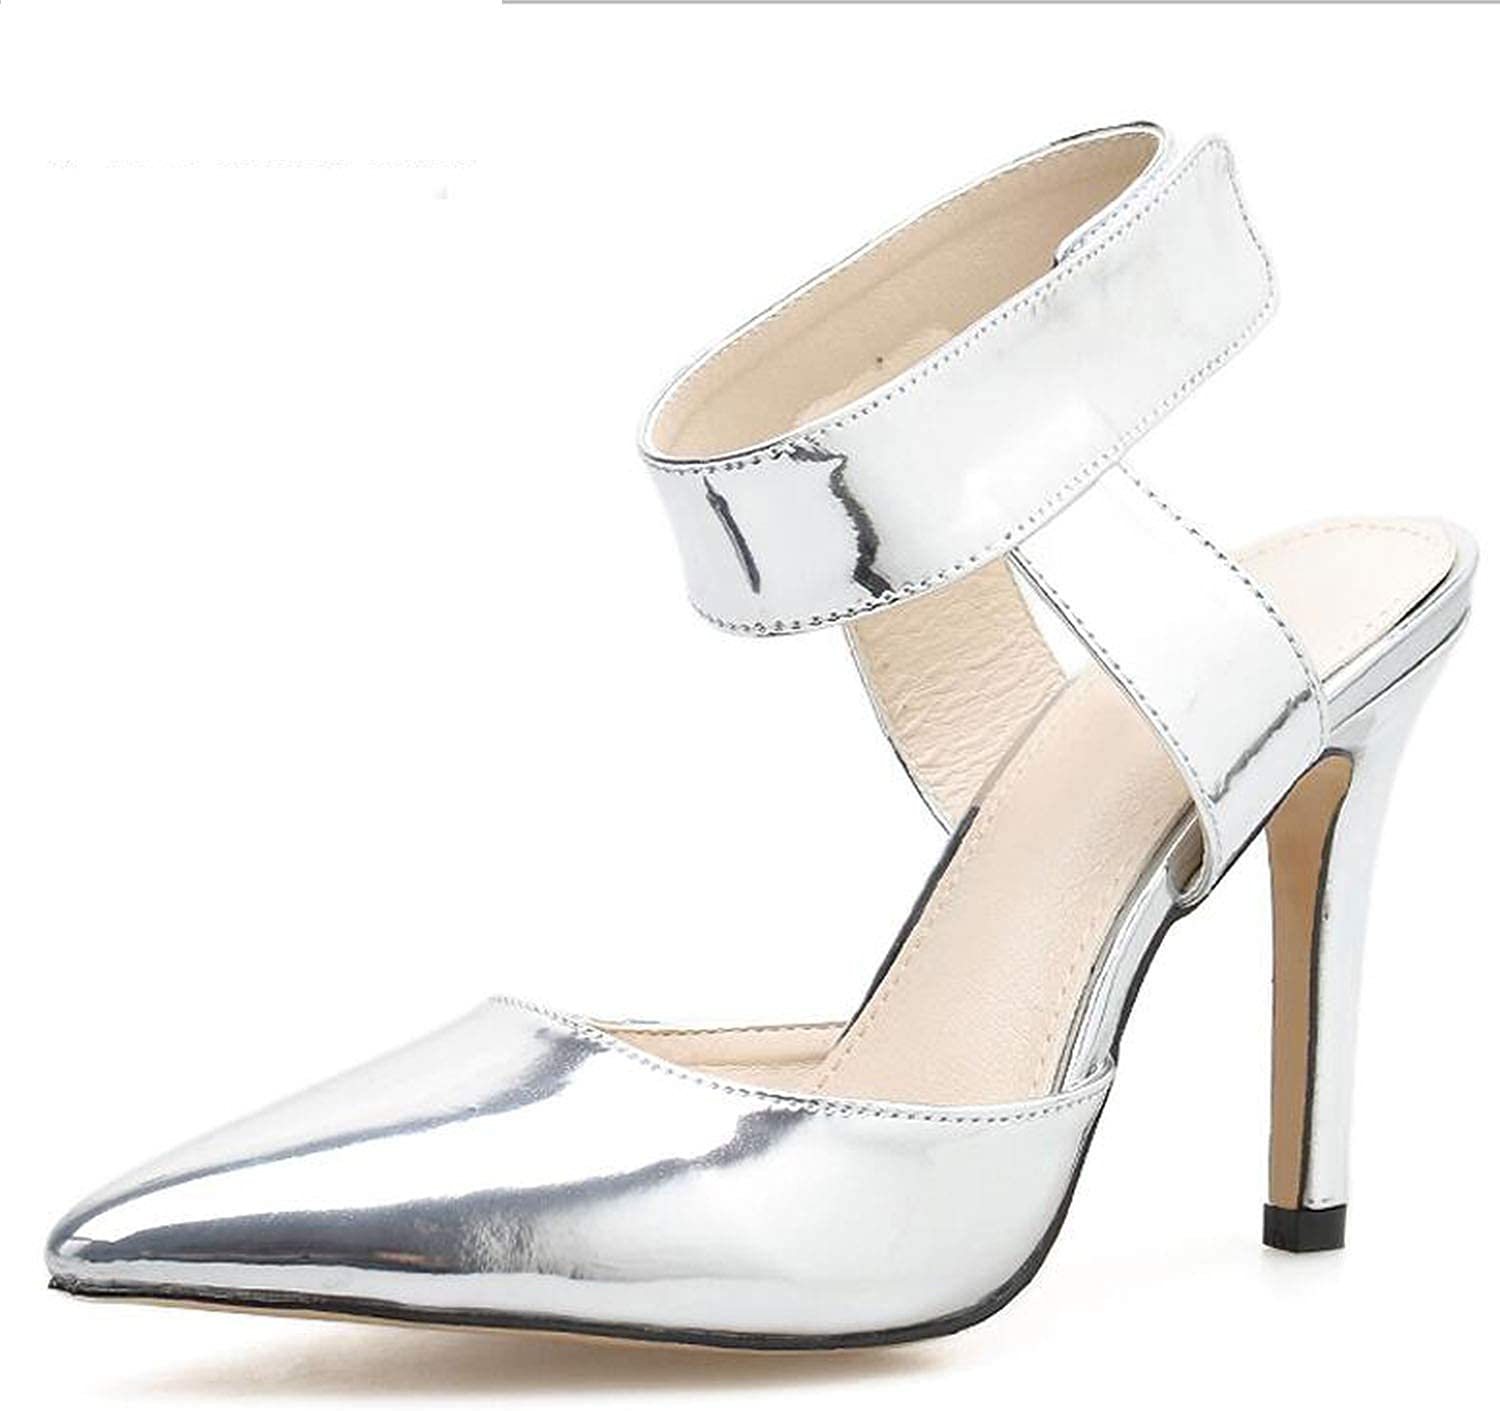 pink flowers Fashion WomenPatent Leather Ankle Strap Buckle Pumps High Heels Pointed Toe Thin Heel Lady shoes